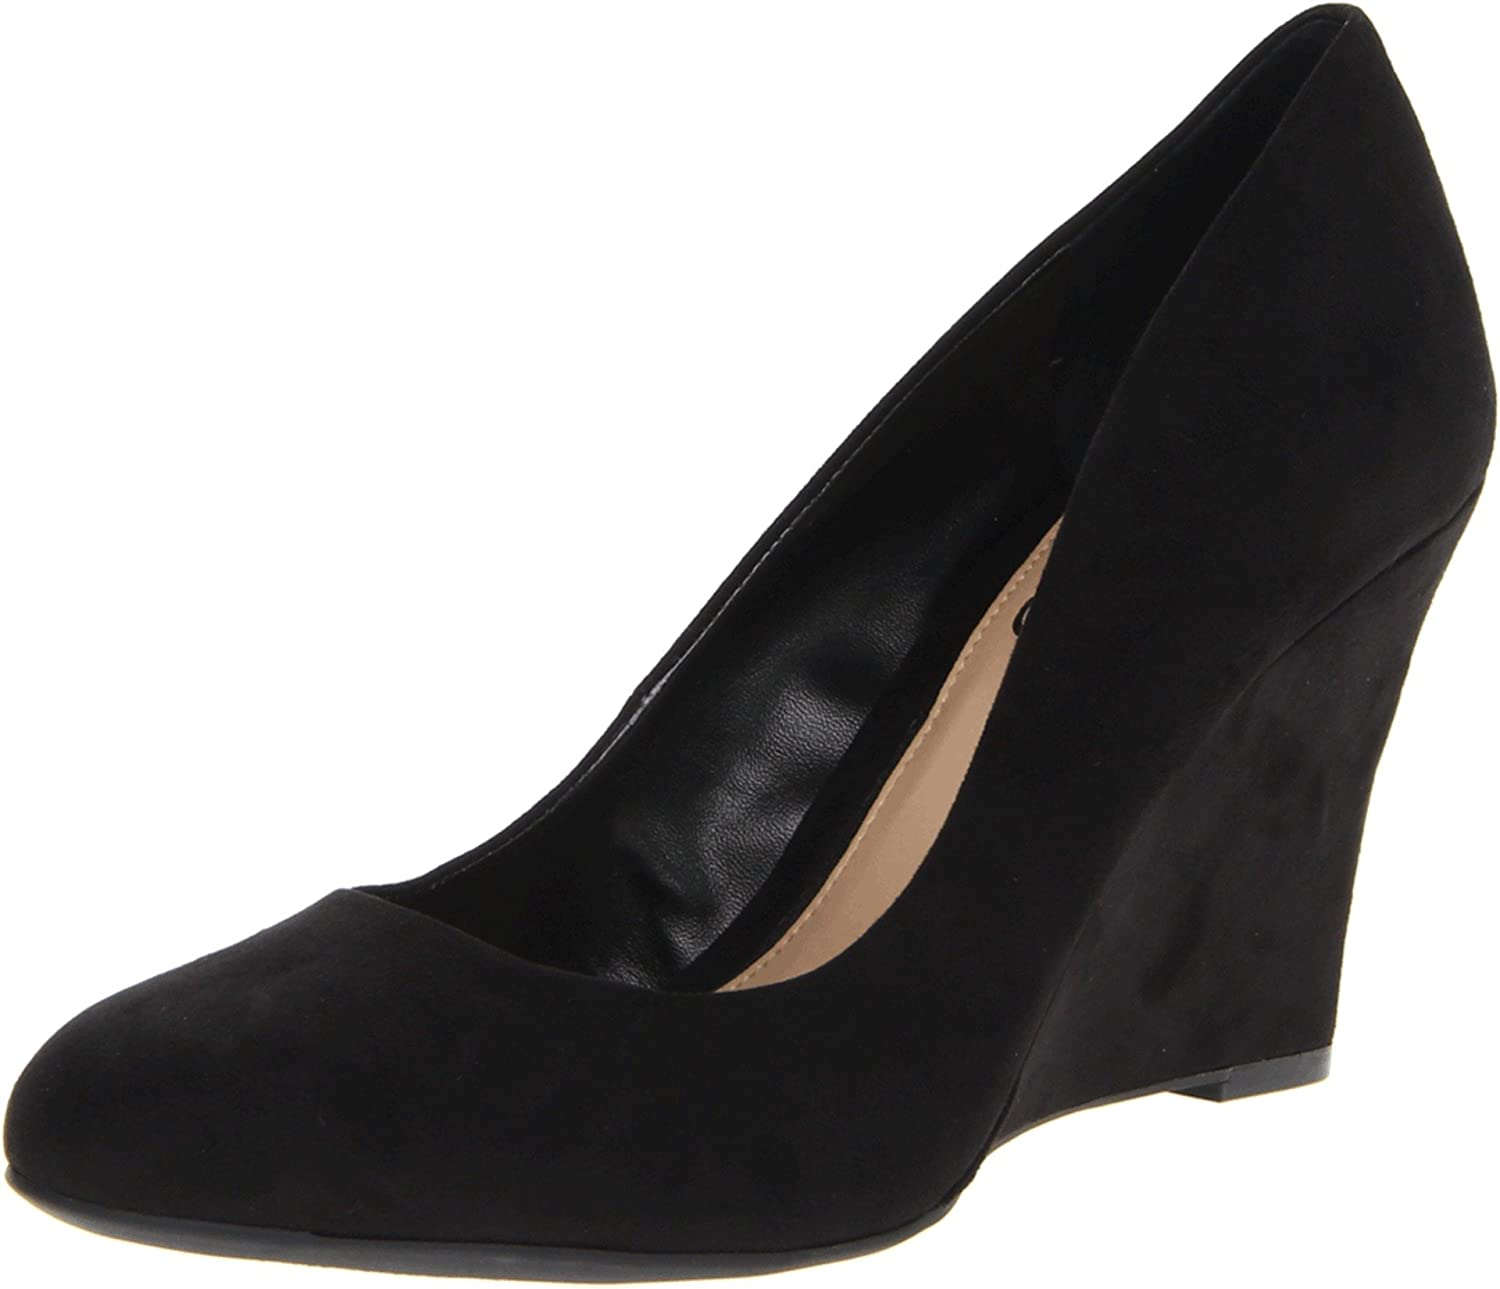 Black Suede Jessica Simpson Women's Cash Wedge Pump